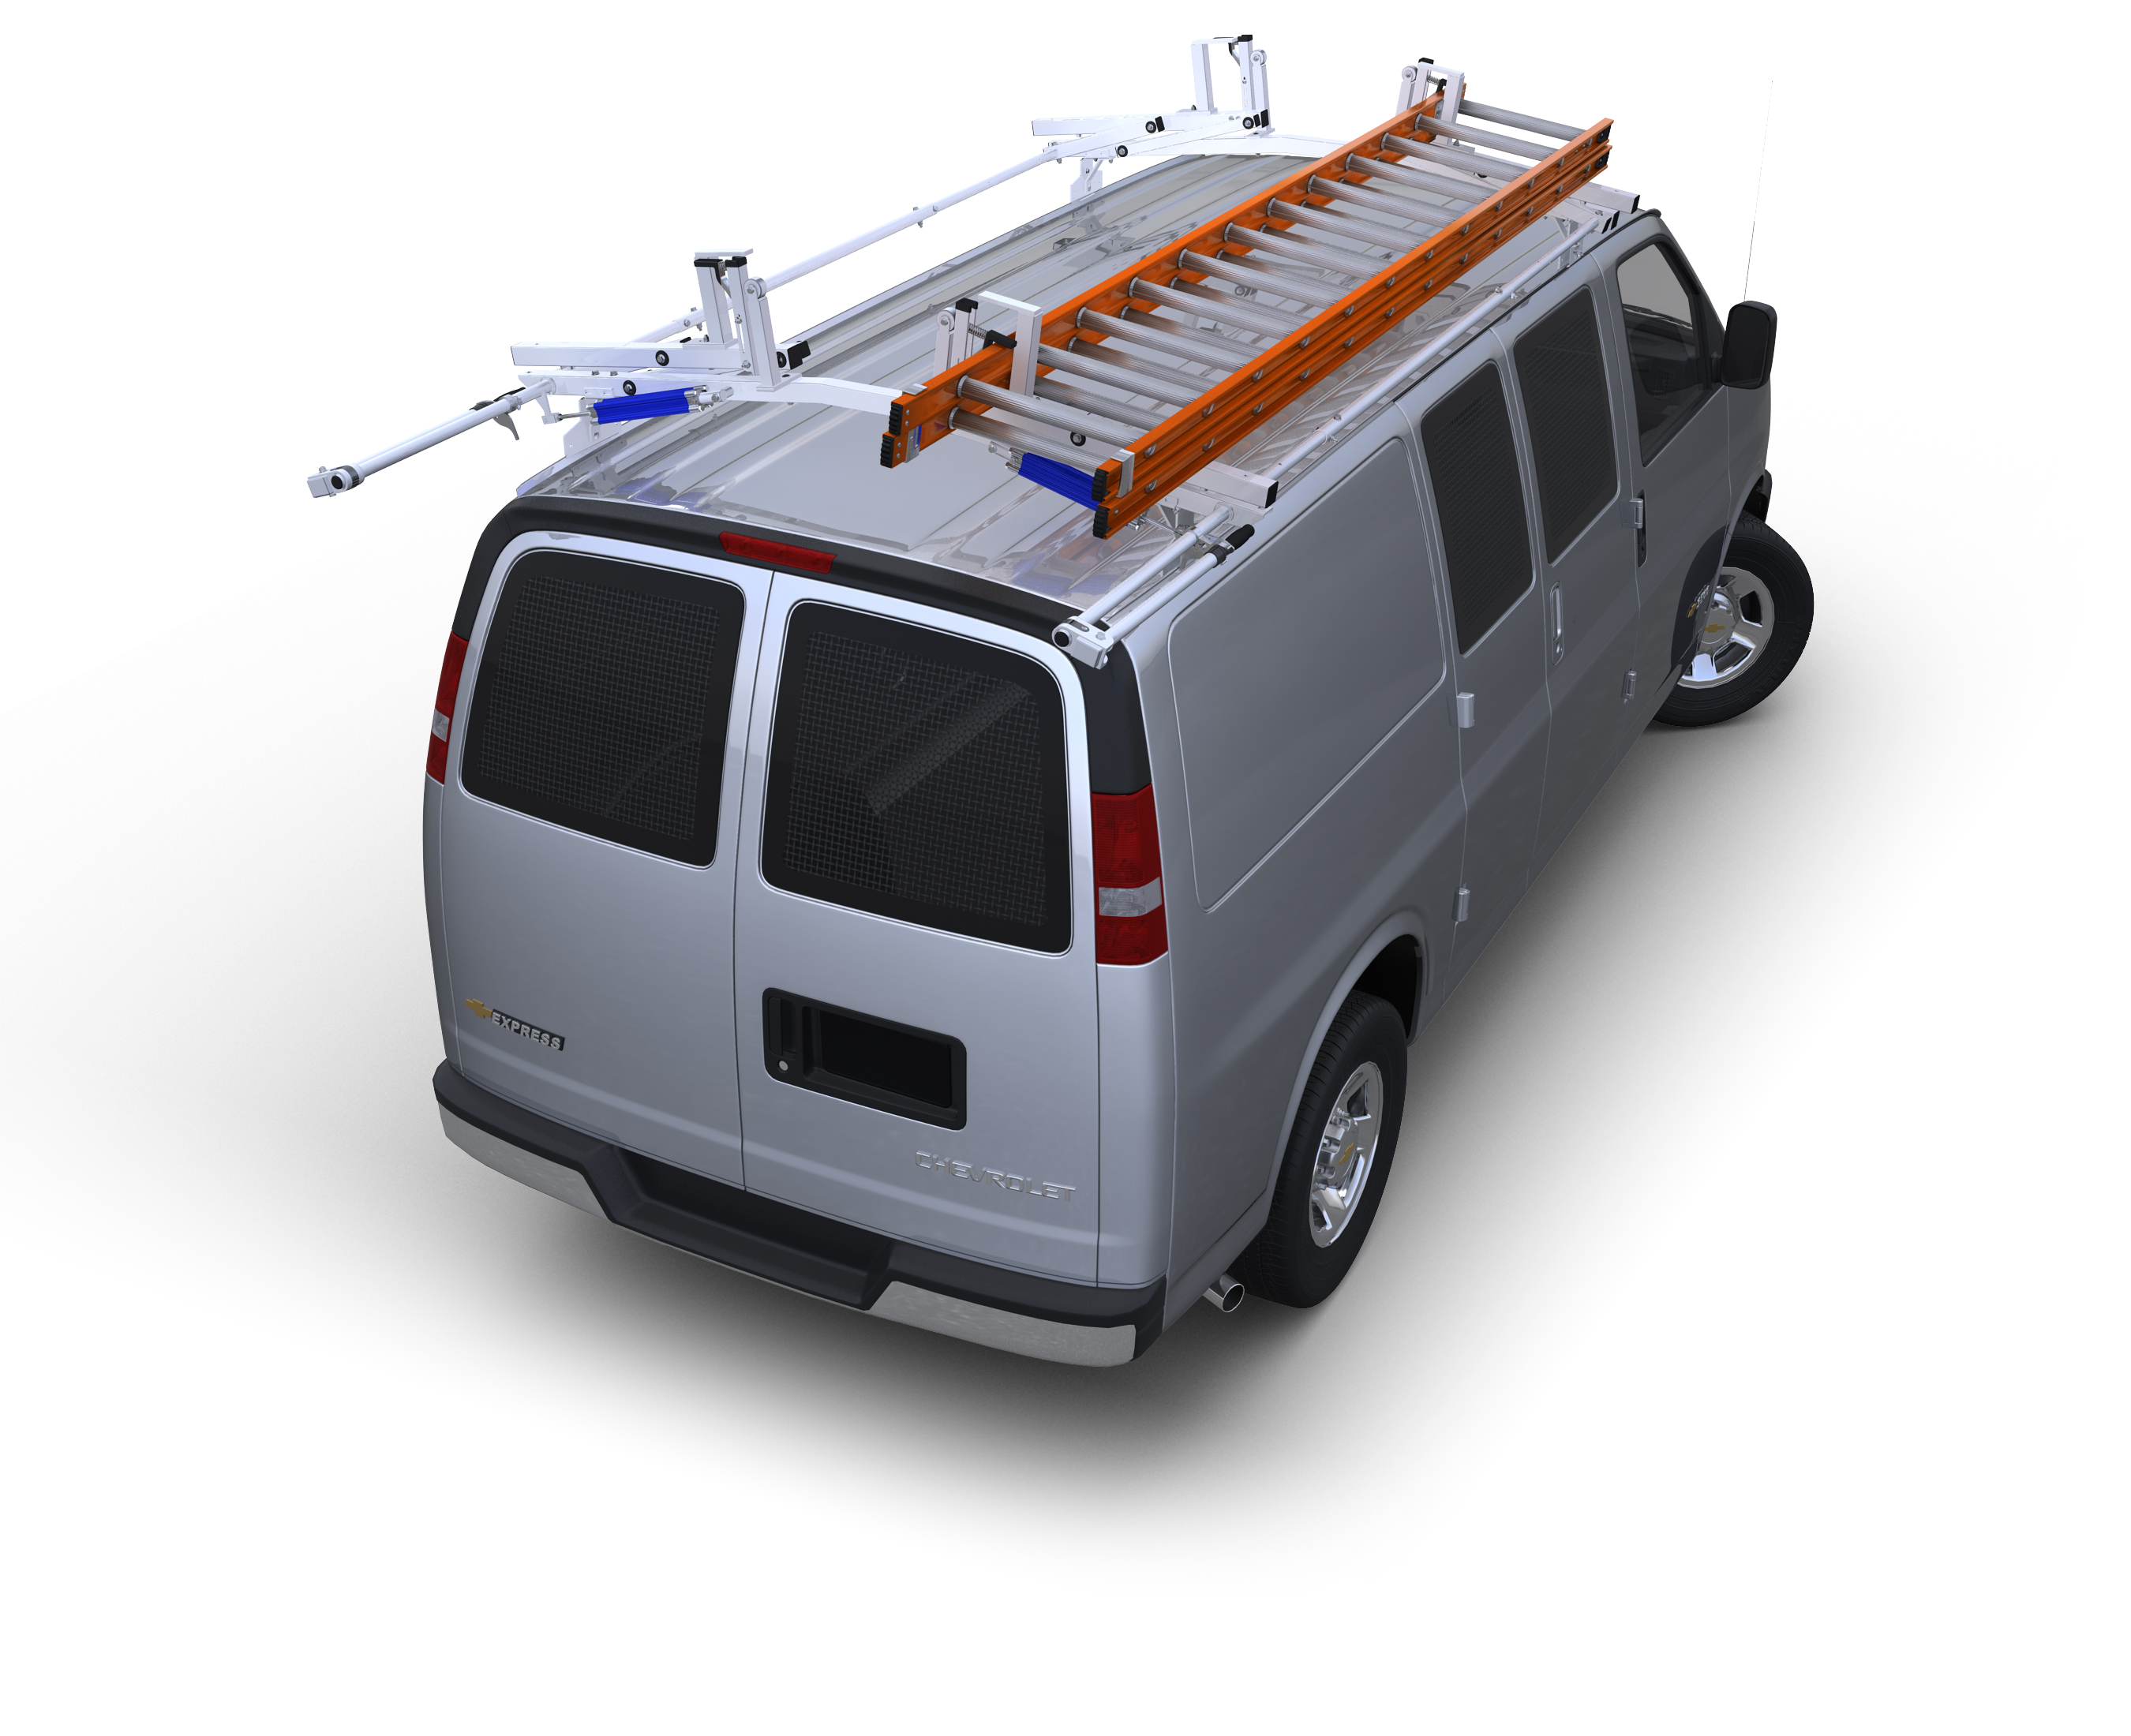 HVAC Contractor Package – Standard Wheelbase - SAVE $150!